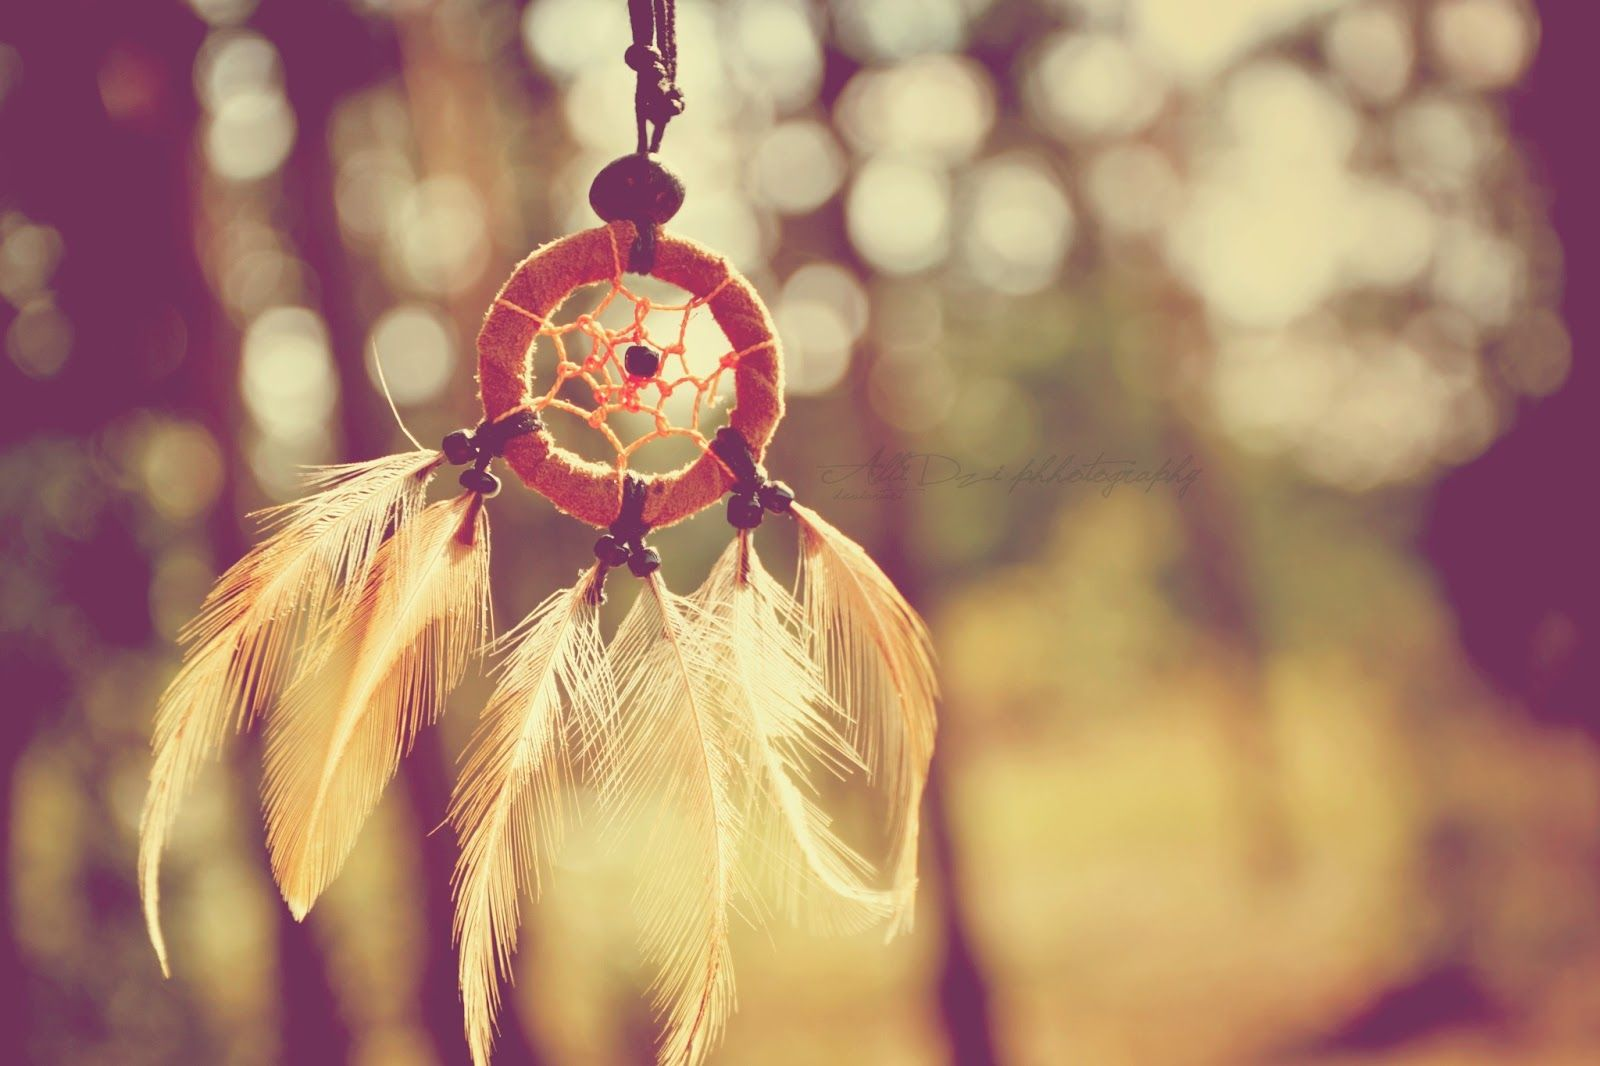 Dream Catcher Quotes - wallpaper.